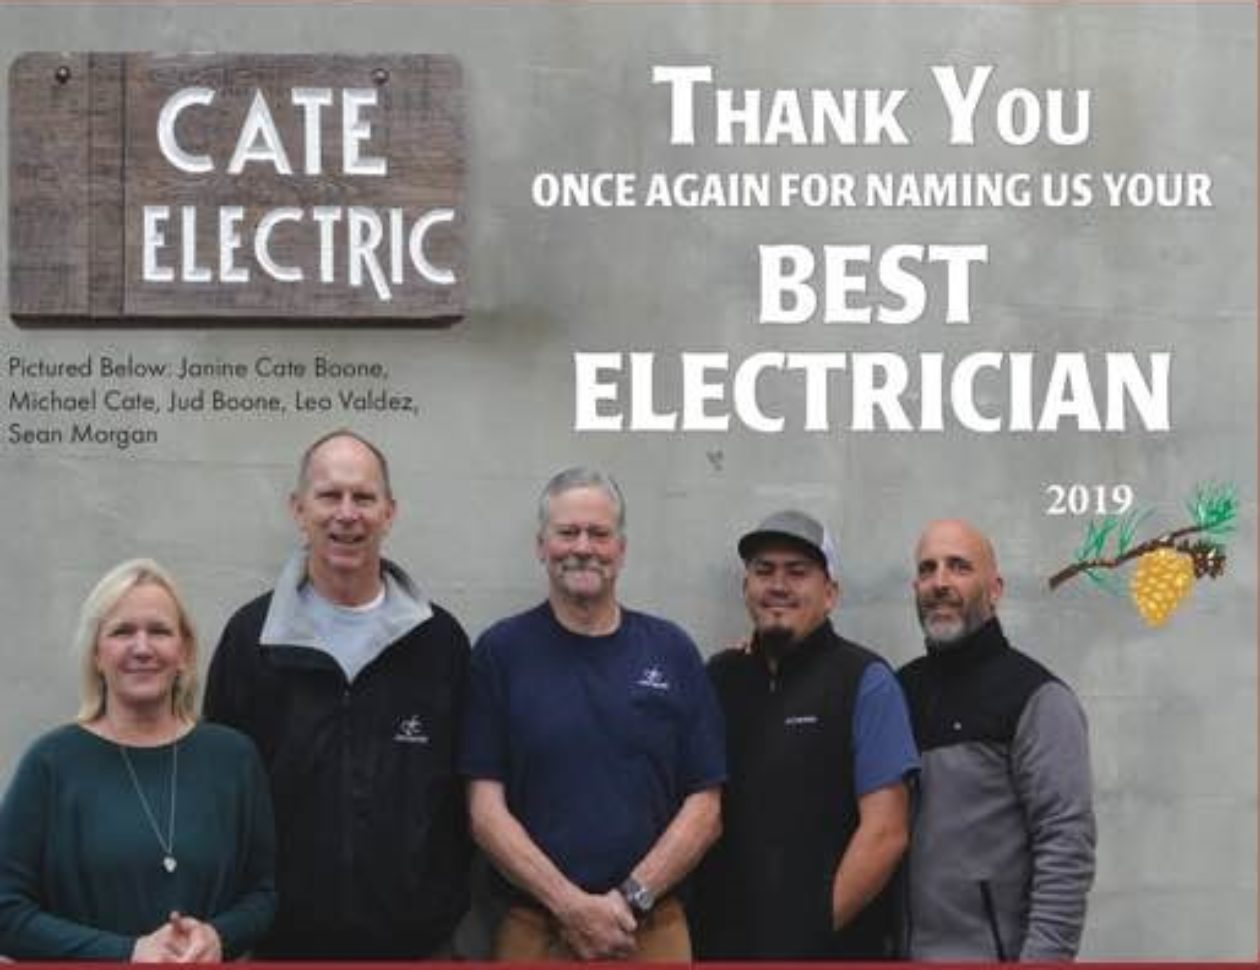 Cate Electrical Co., Inc.